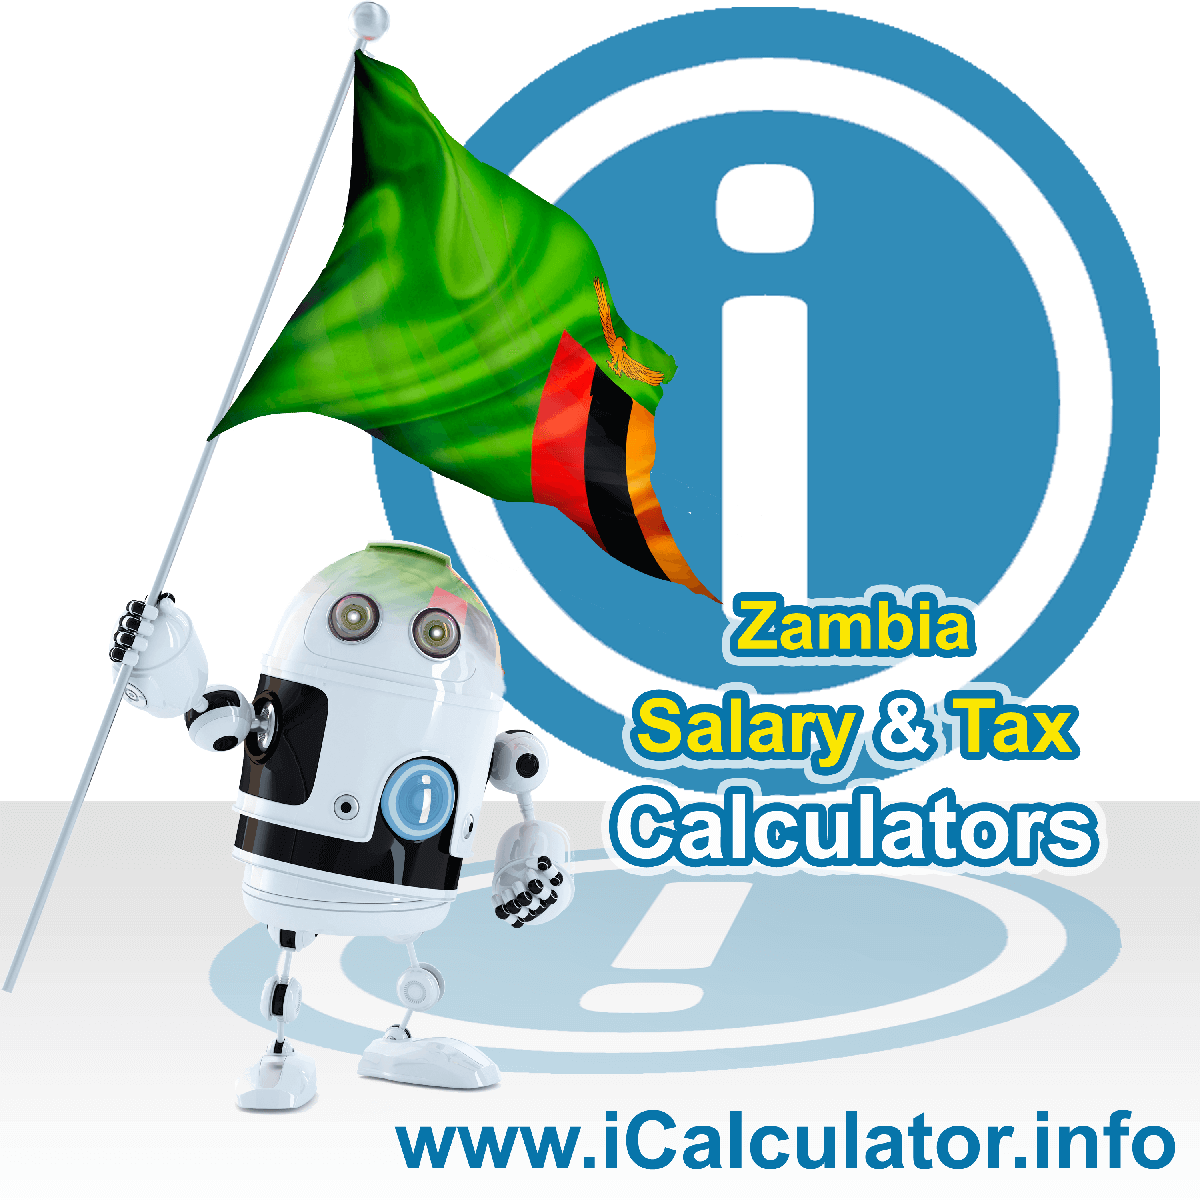 Zambia Salary Calculator. This image shows the Zambiaese flag and information relating to the tax formula for the Zambia Tax Calculator